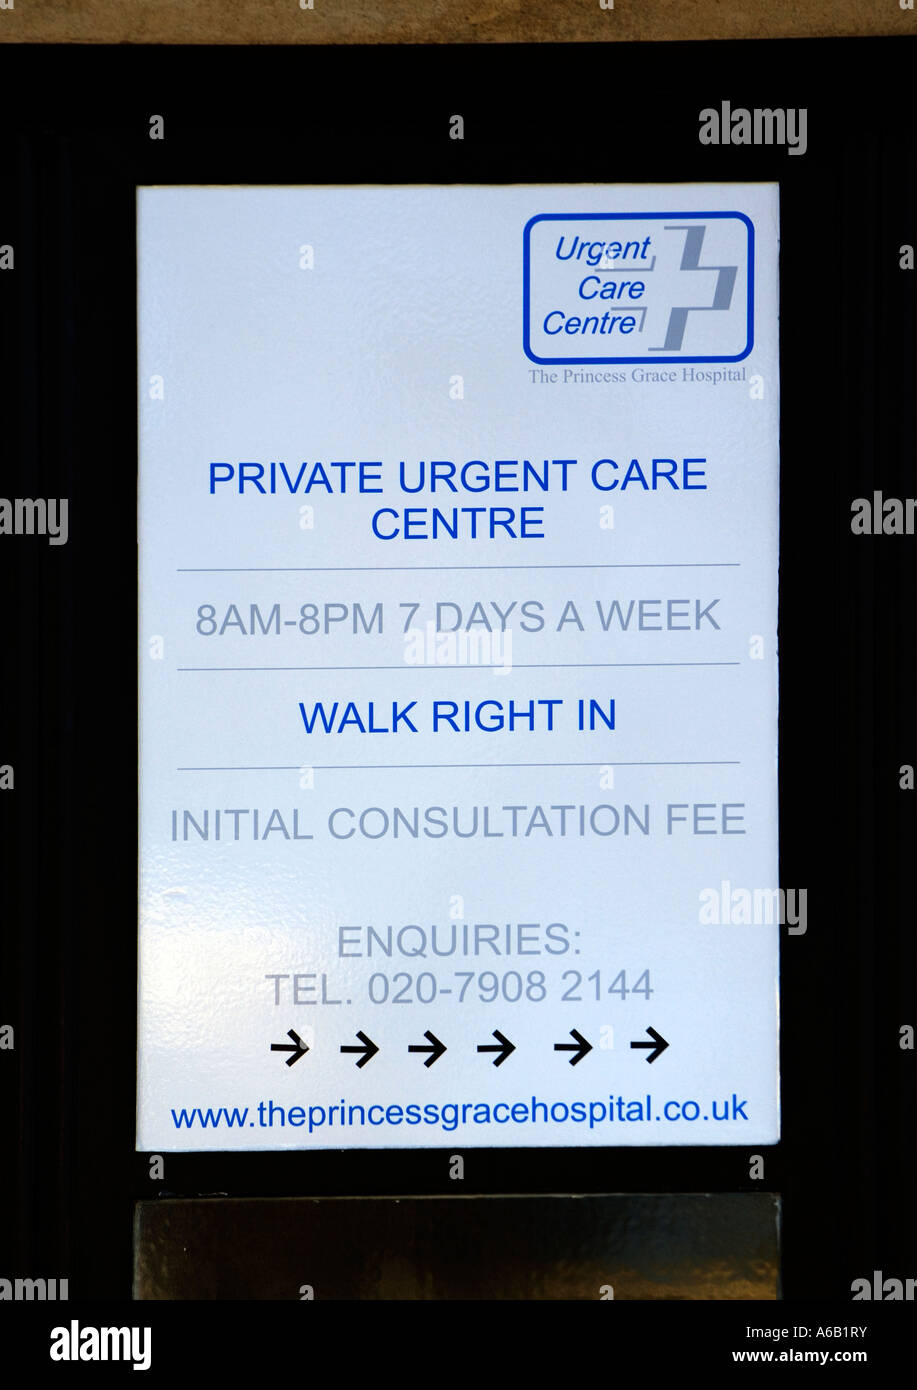 Sign promoting Private Urgent Care Centre - Marylebone Road, London - Stock Image